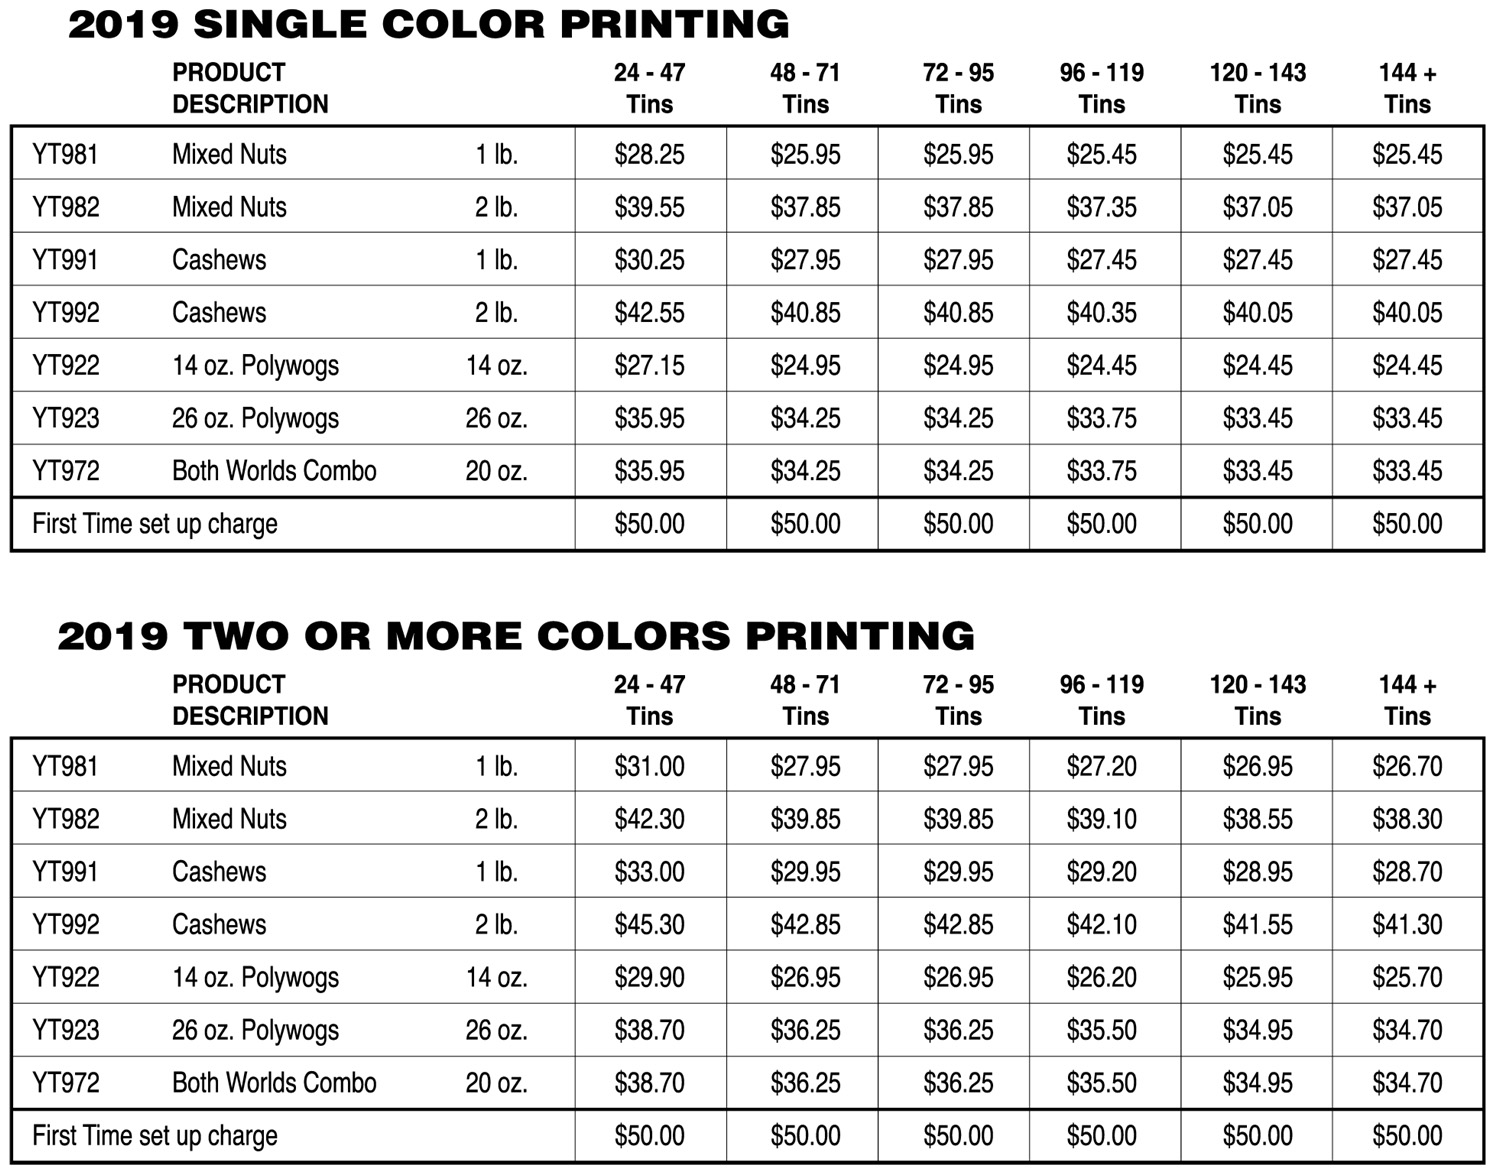 pricing-grid19.jpg